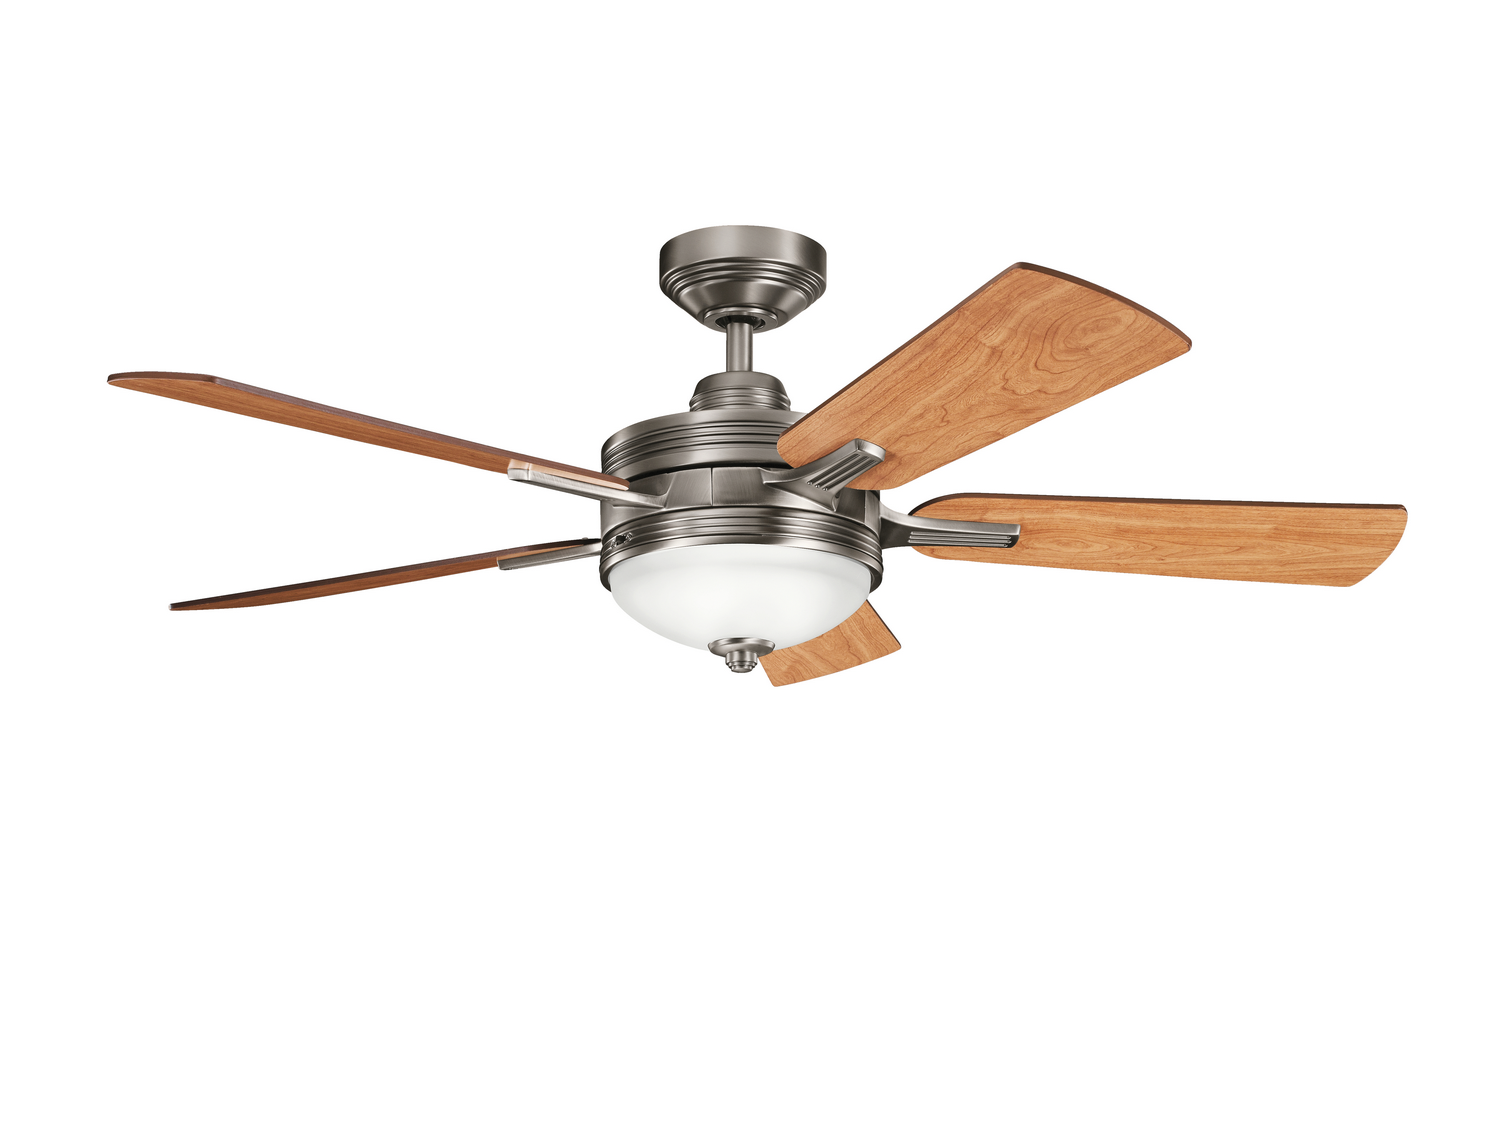 52 inchCeiling Fan from the Logan collection by Kichler 300148AP